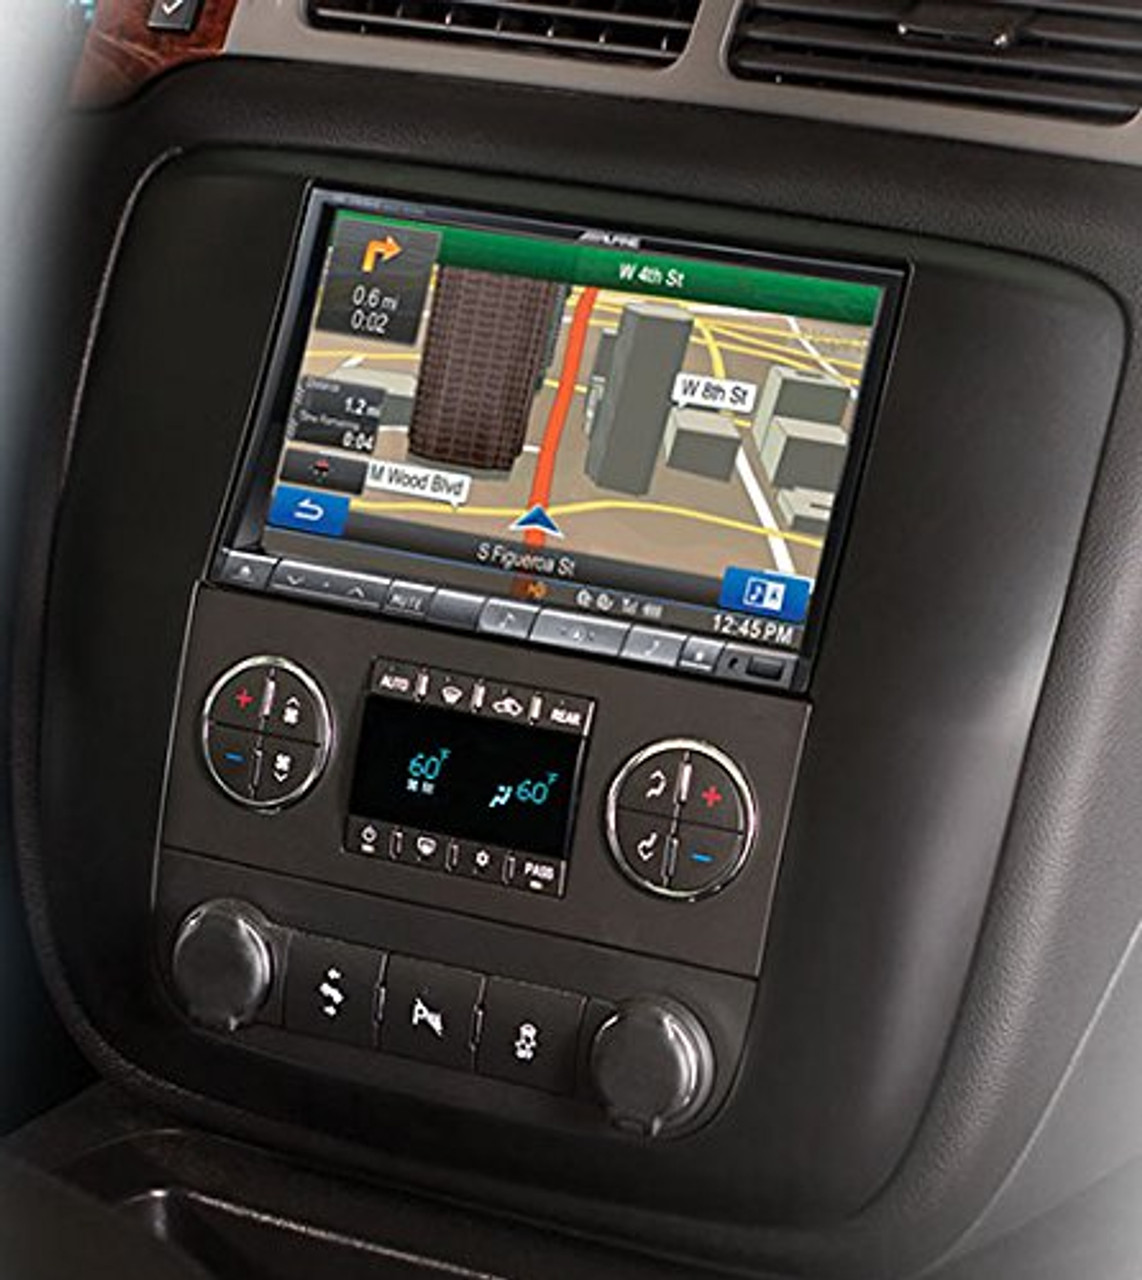 Alpine KTX-GM8-O 8-Inch Dash Kit for 2007 - 2013 Chevrolet and GMC trucks and SUVs